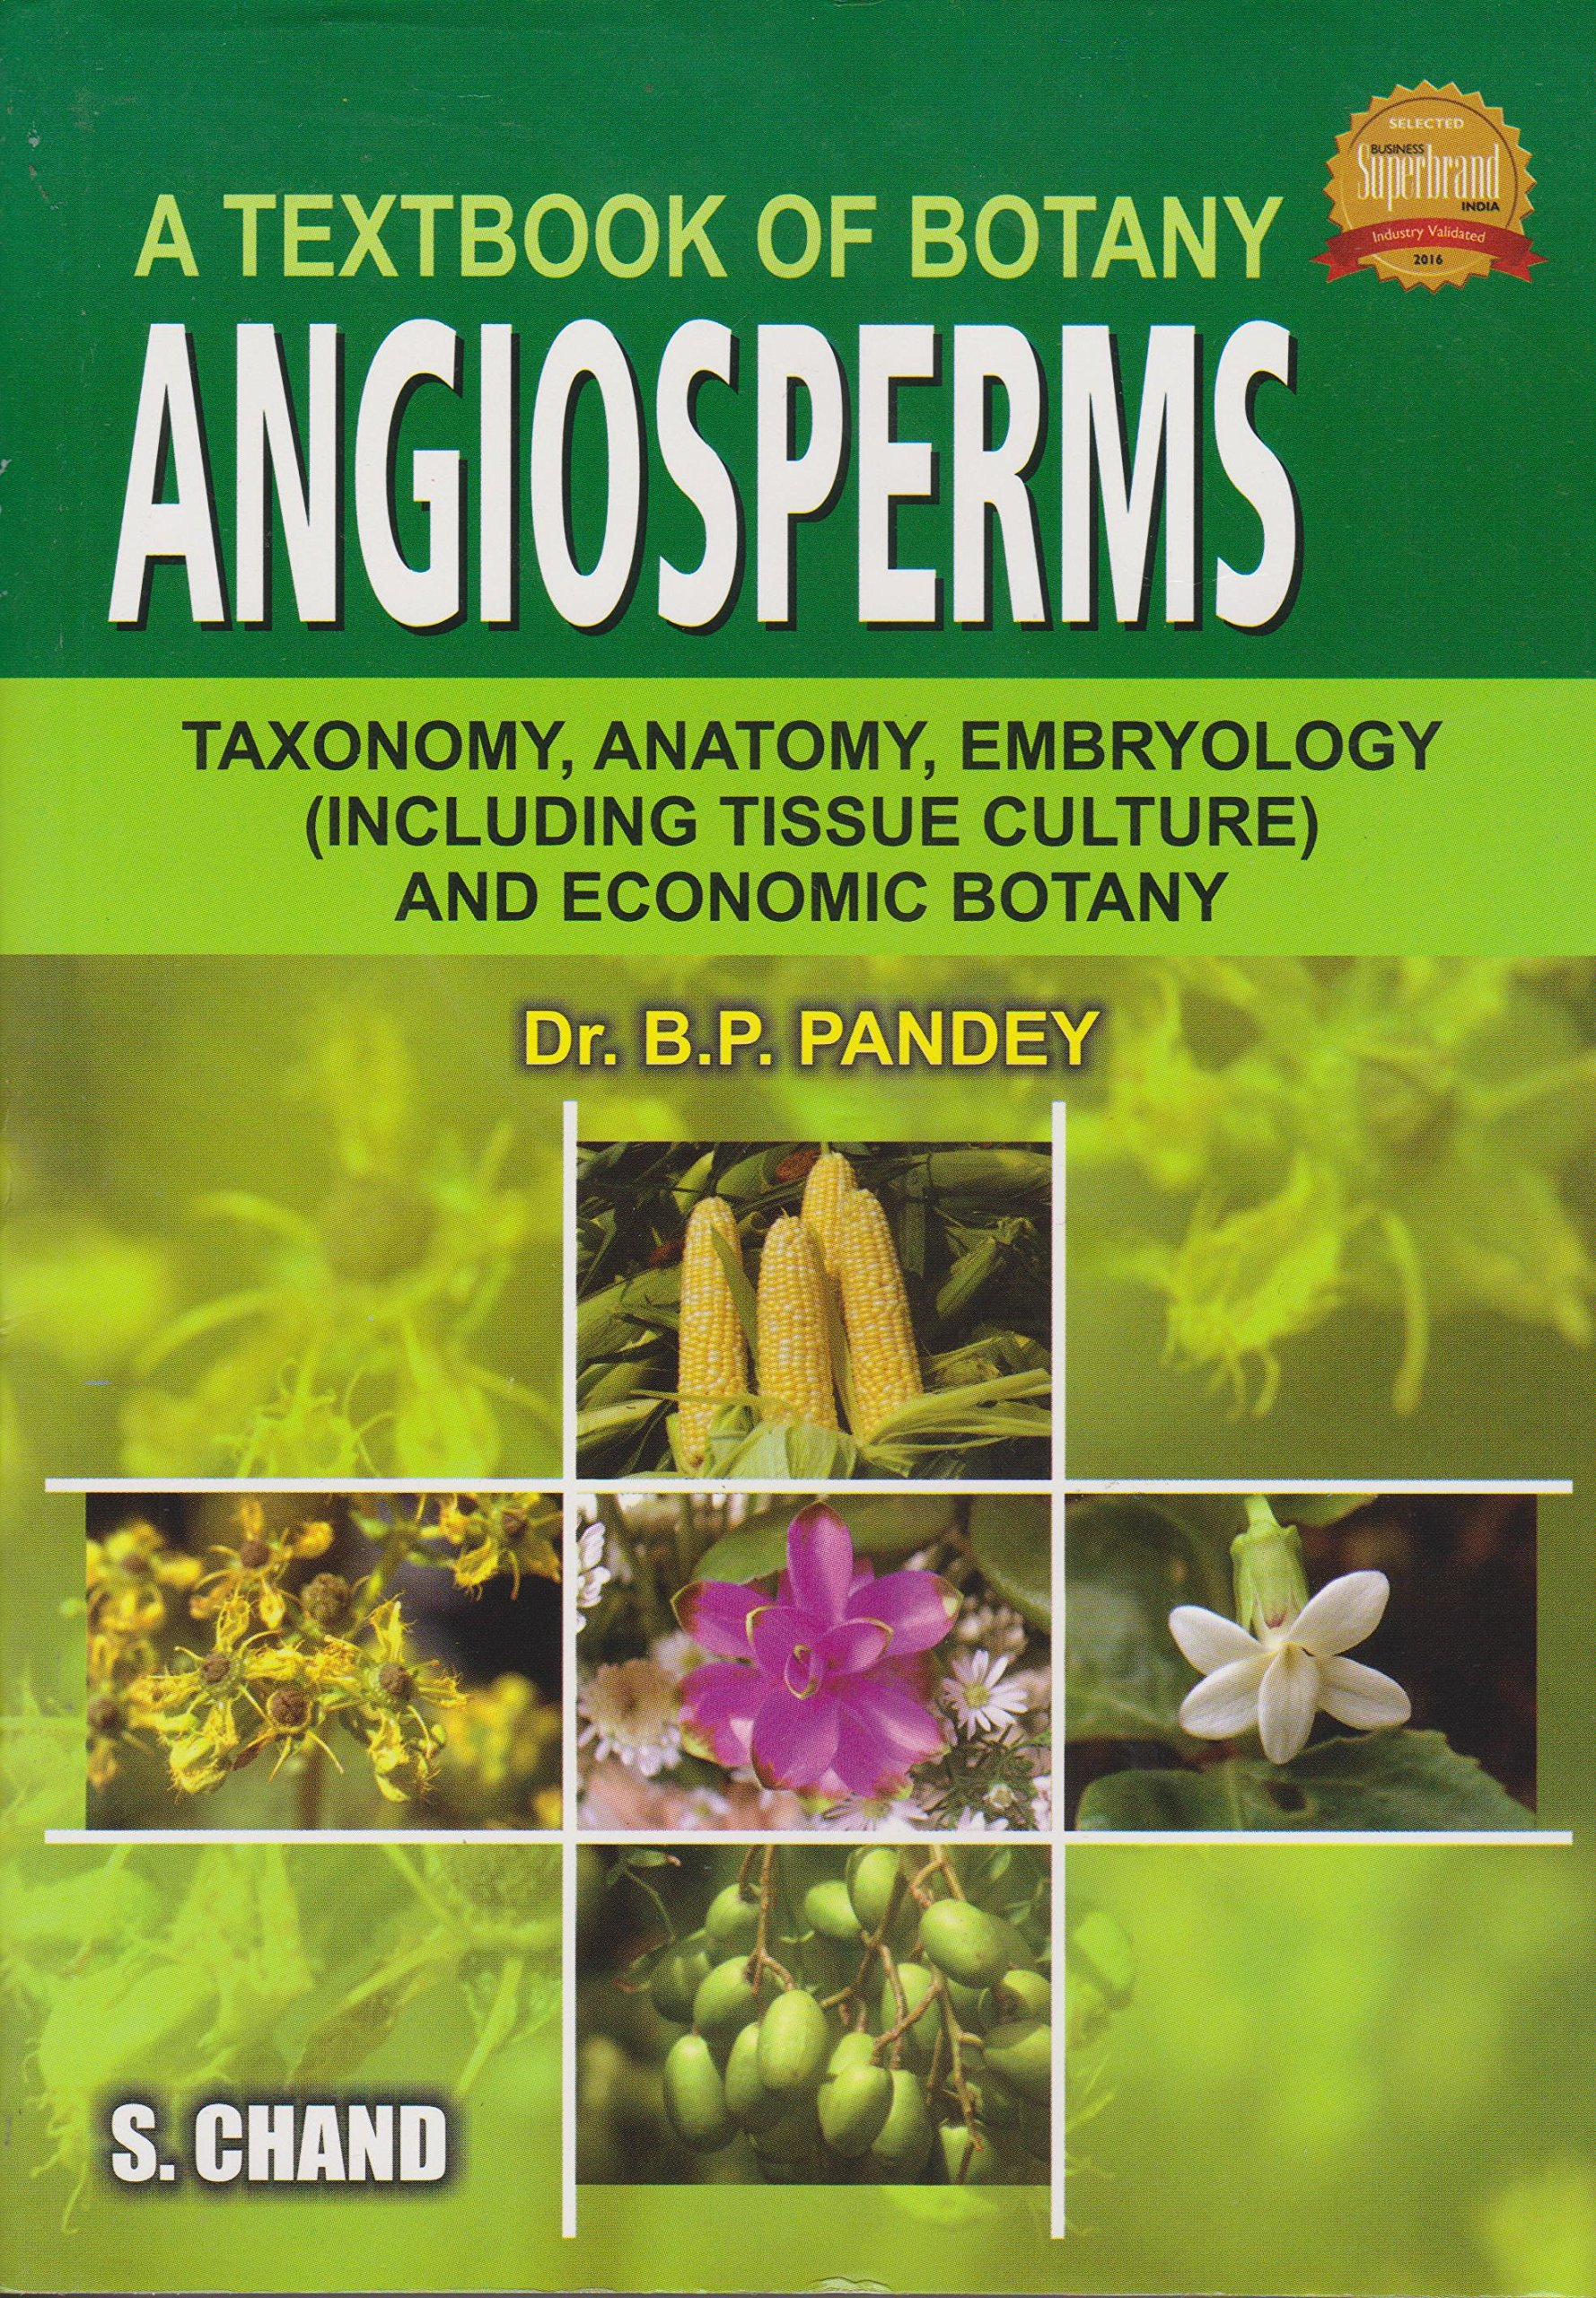 Buy A Textbook of Botany: Angiosperms Book Online at Low Prices in ...